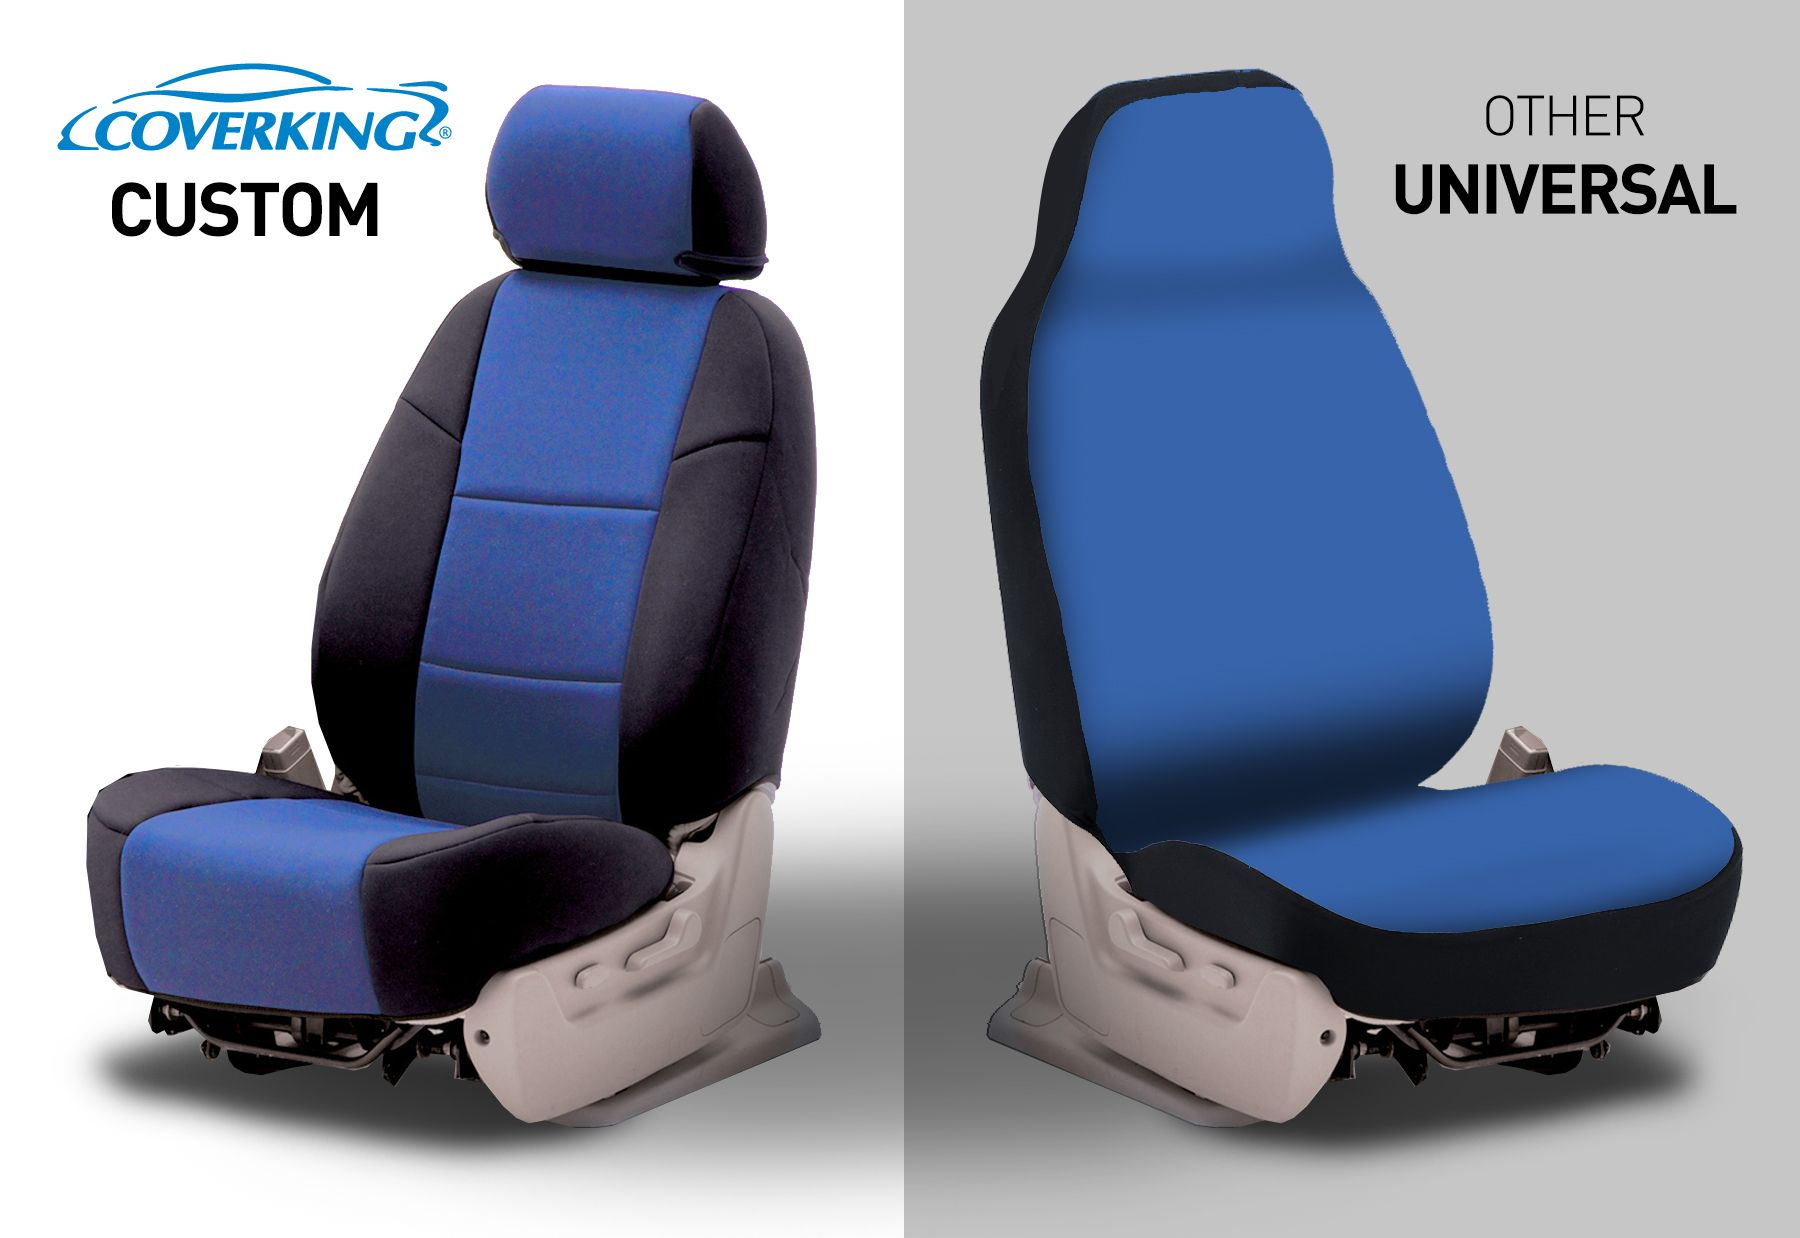 hight resolution of there is no such thing as a one size fits all seat cover if you want superb fit coverking s fully custom made seat cover is the clear choice